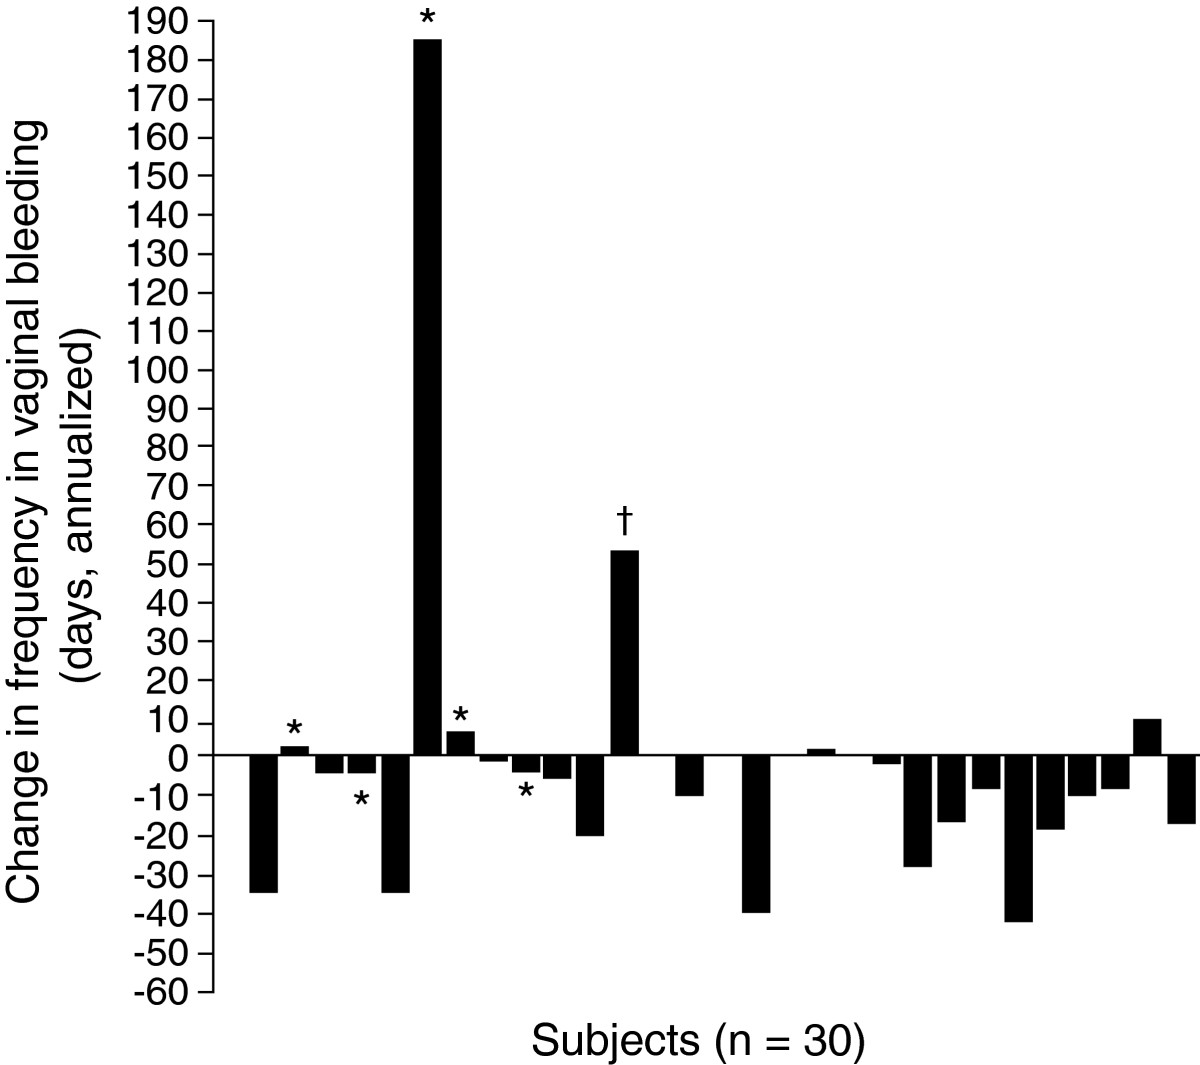 http://static-content.springer.com/image/art%3A10.1186%2F1687-9856-2012-26/MediaObjects/13633_2012_Article_42_Fig1_HTML.jpg